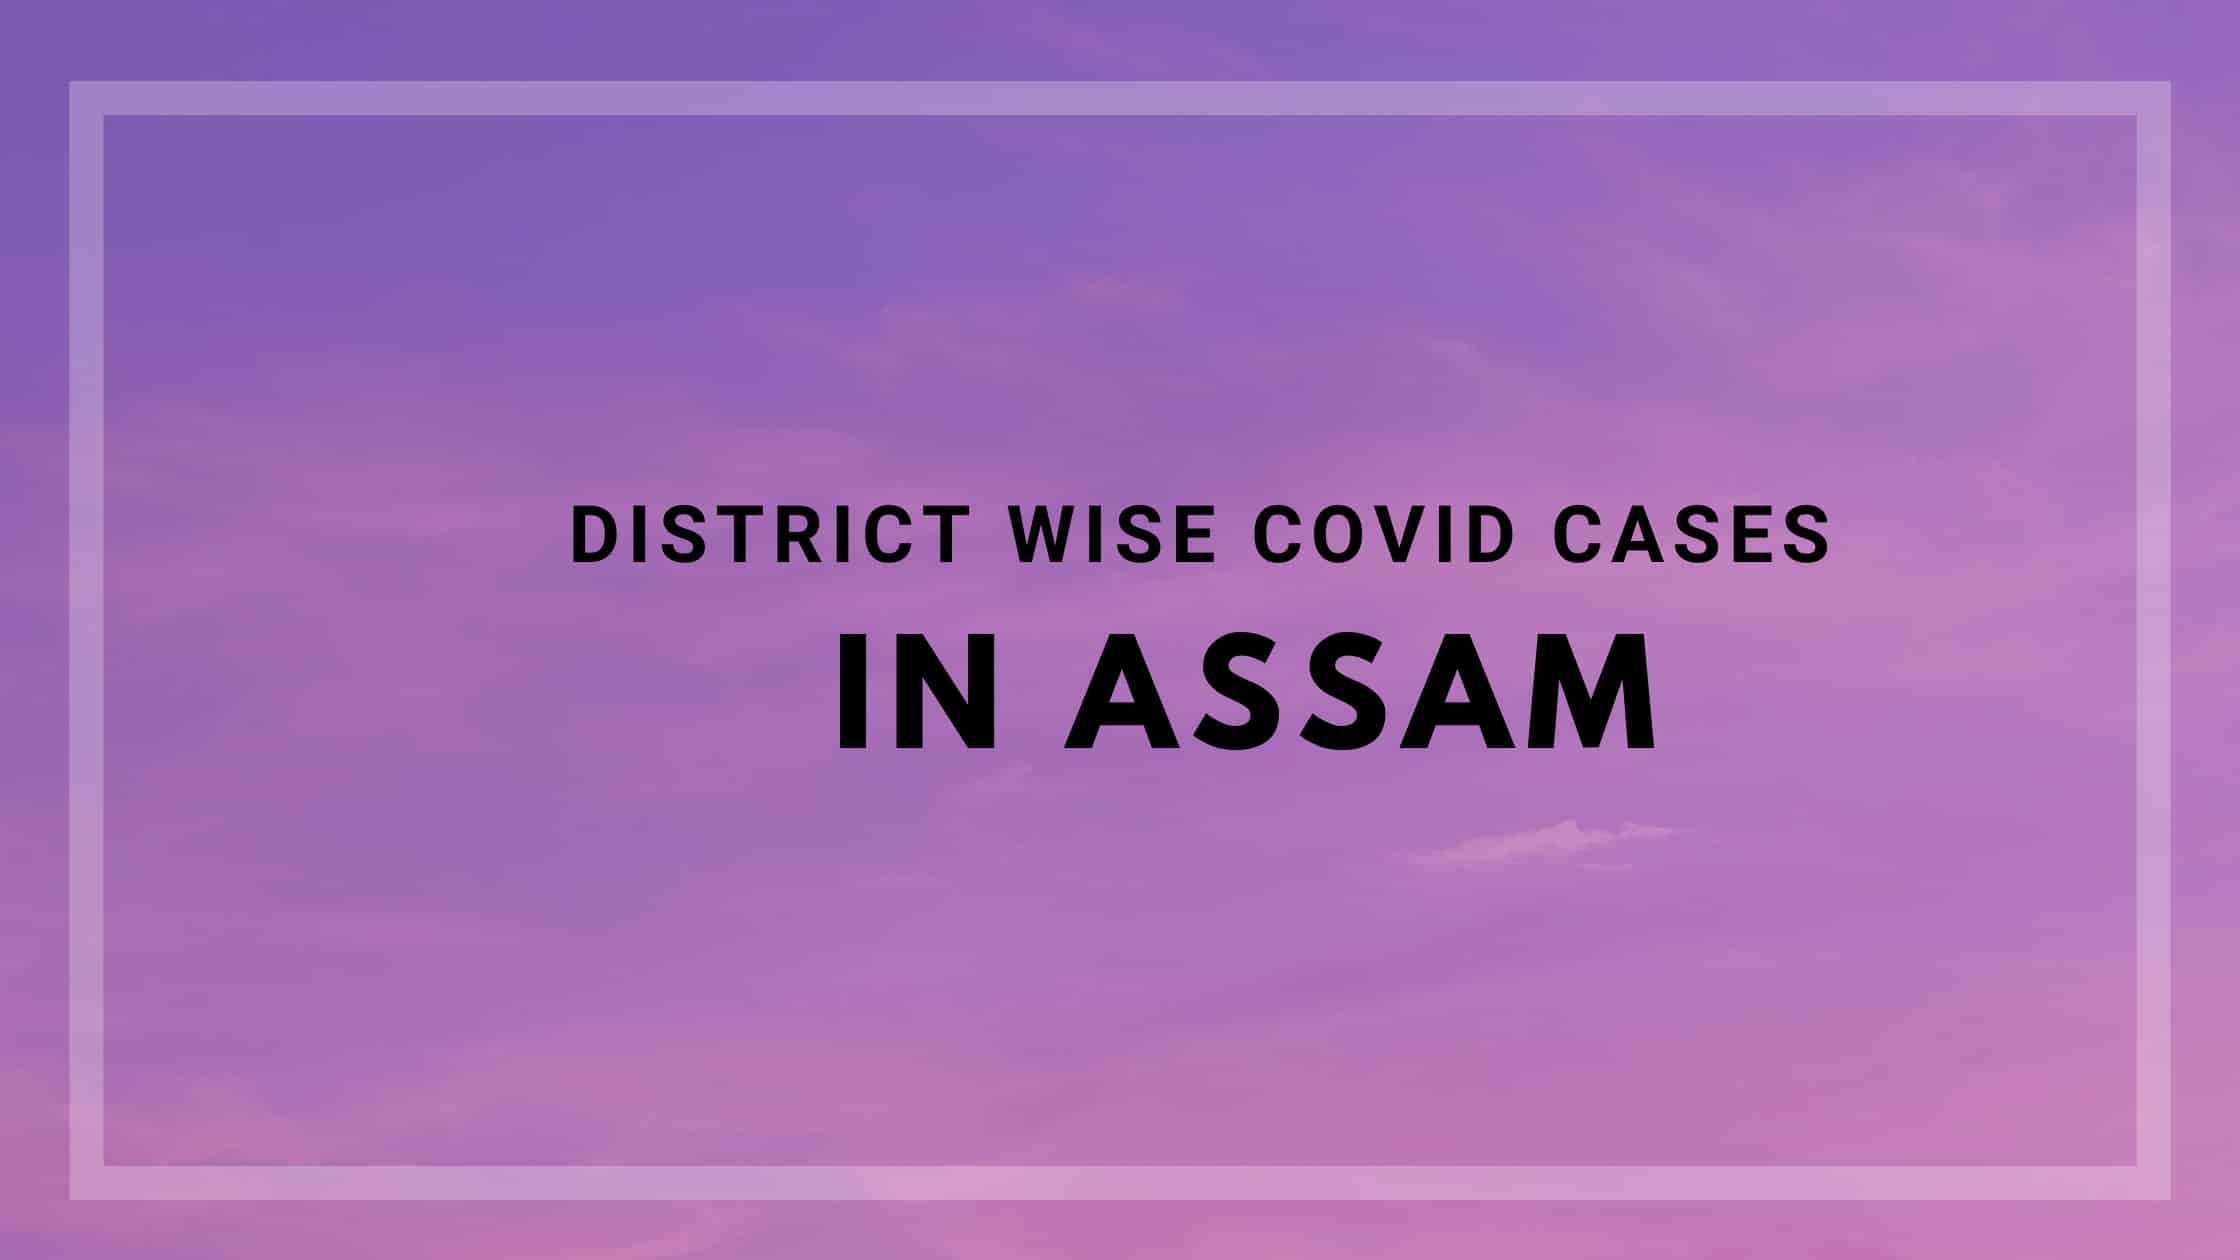 District wise Covid cases in Assam